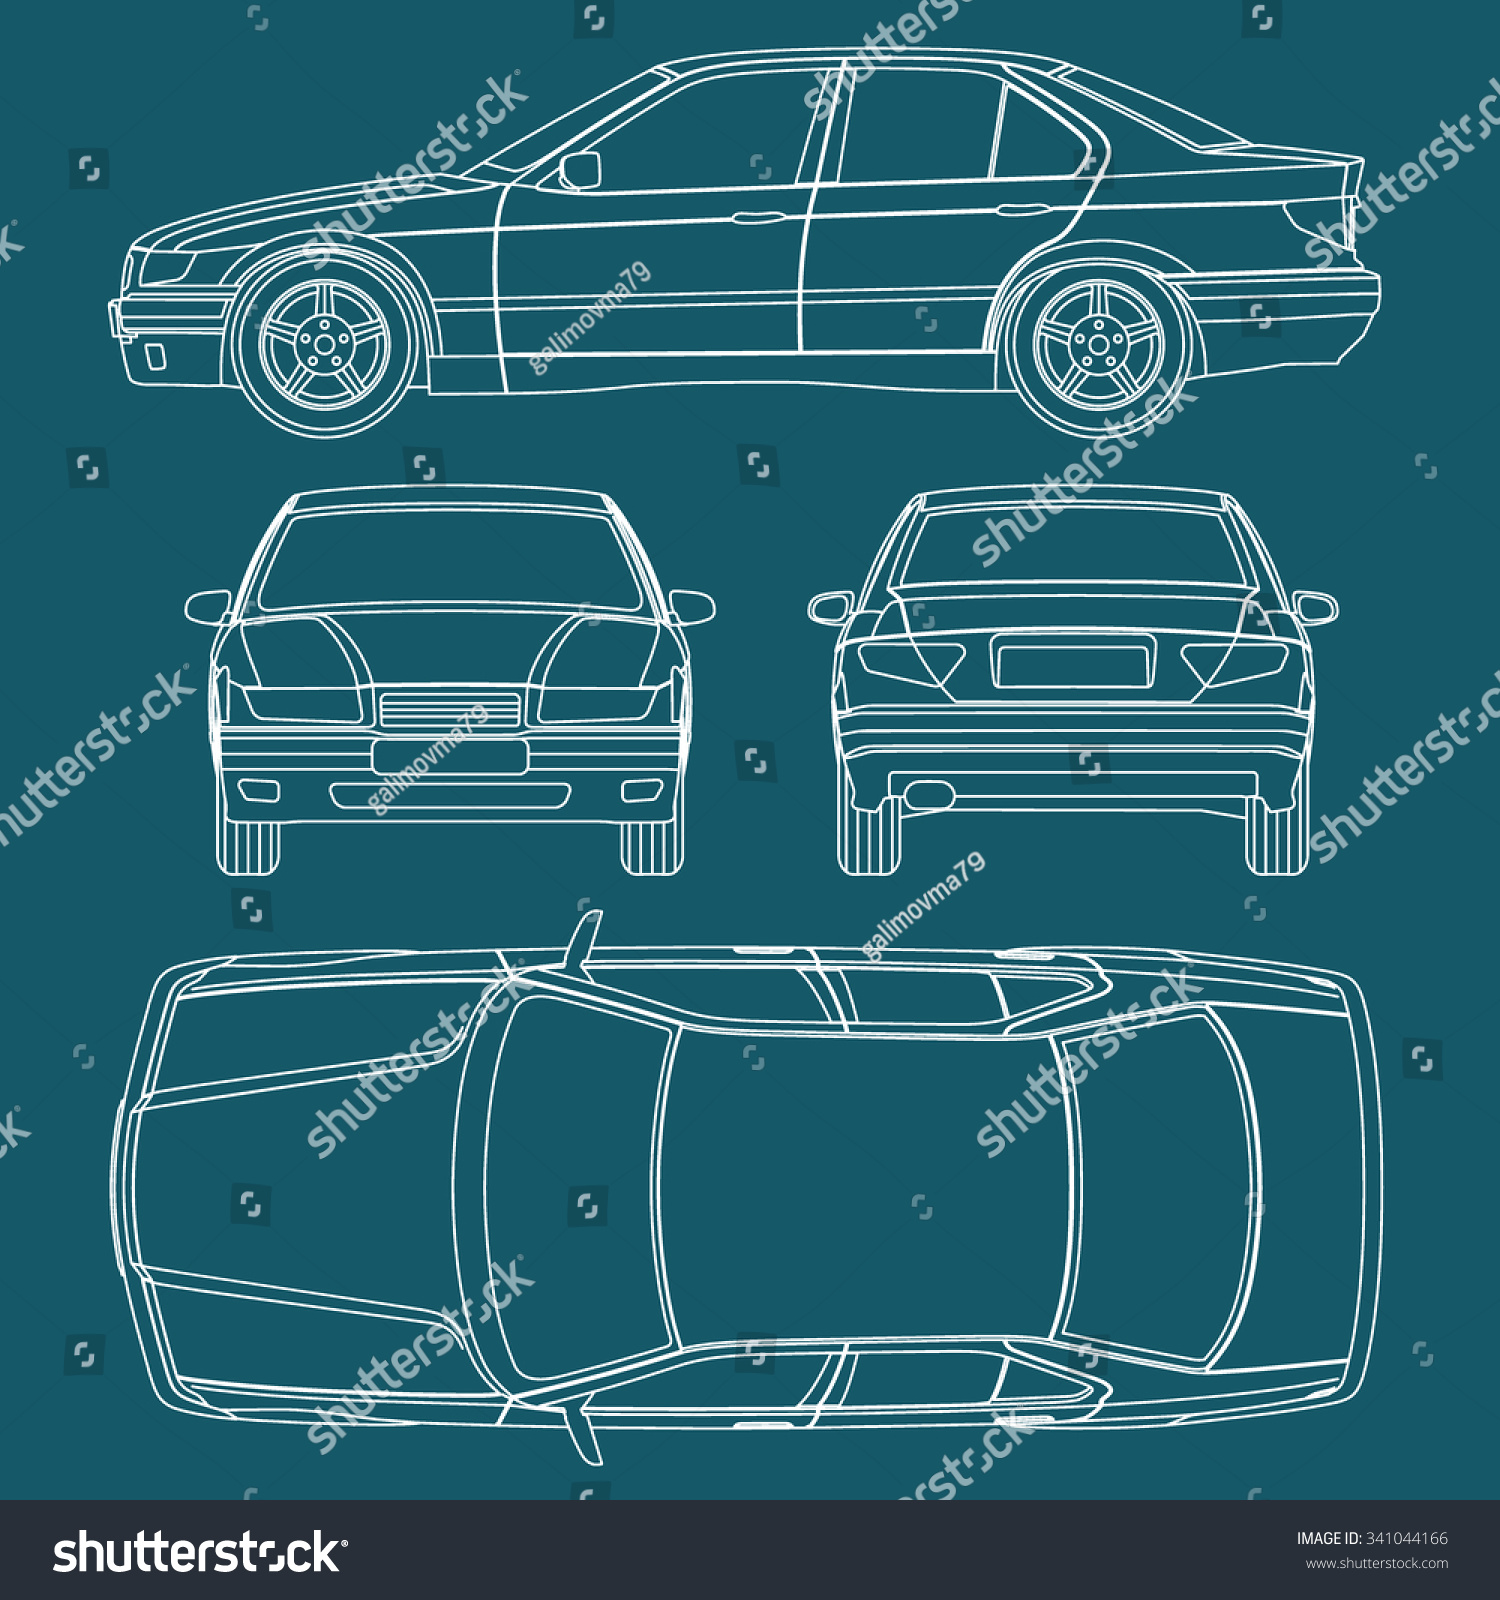 Car line draw blueprint condition report vectores en stock 341044166 car line draw blueprint condition report form vector malvernweather Gallery